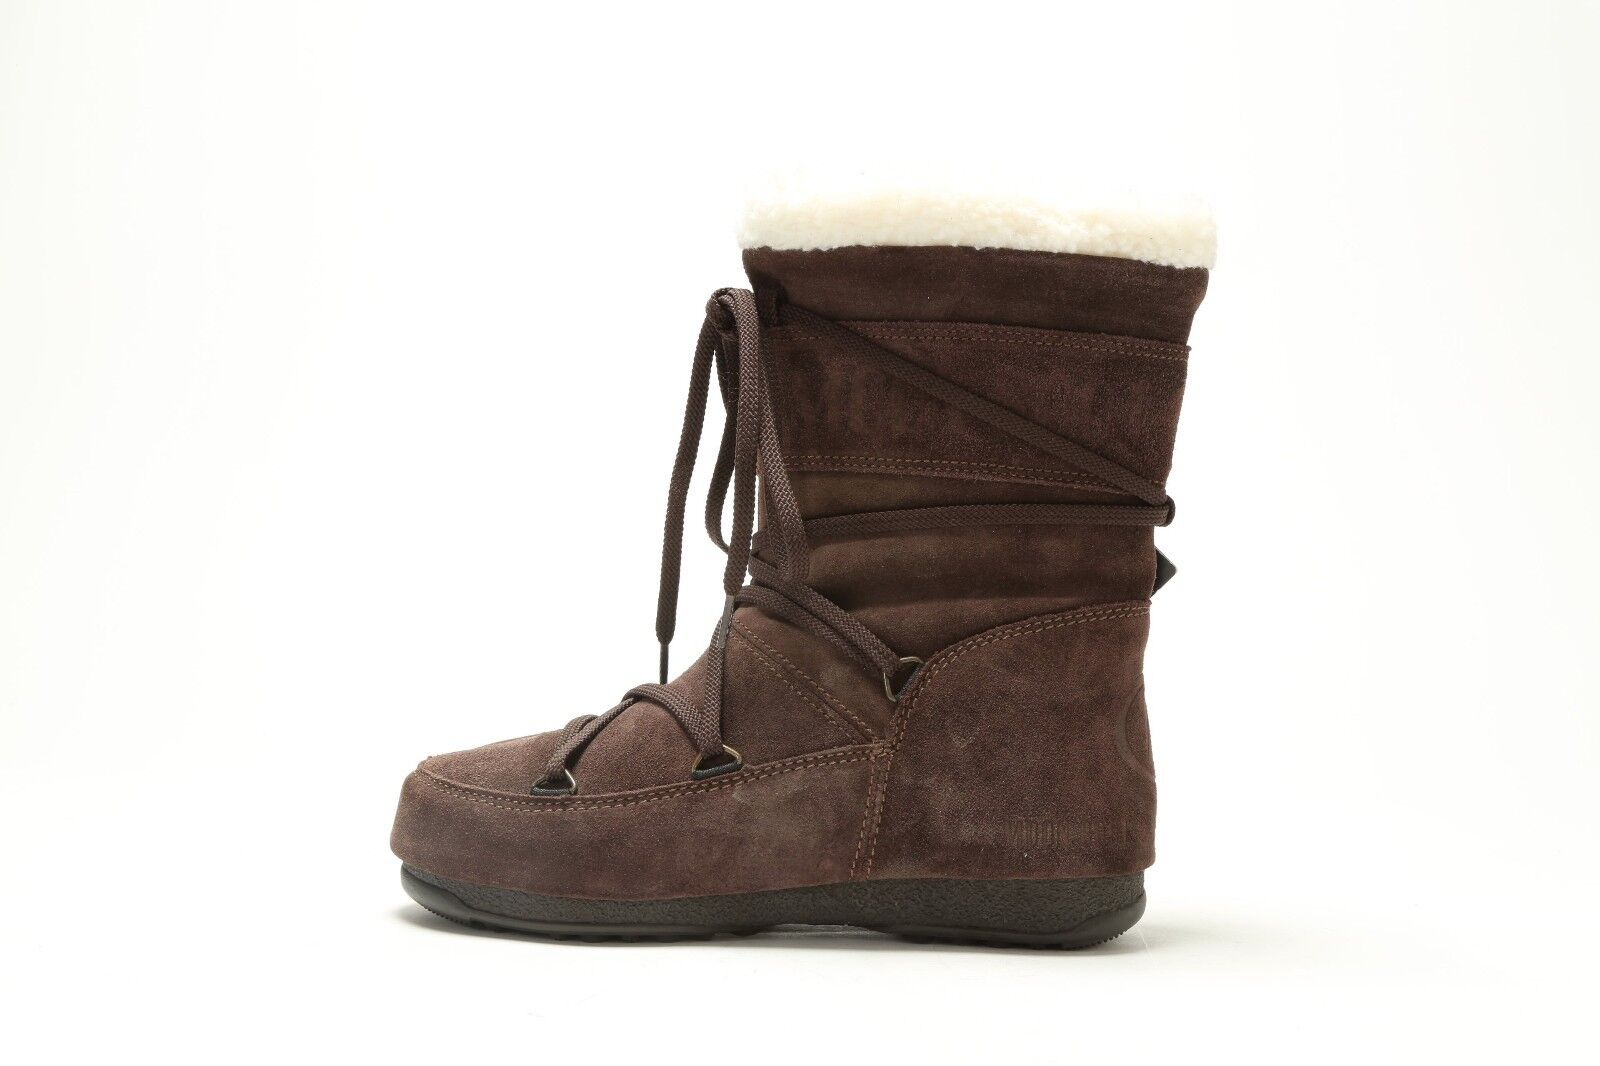 NEW WOMEN'S TECNICA BUTTER MID MOON BOOT 14015700002 DARK BROWN MSRP  150